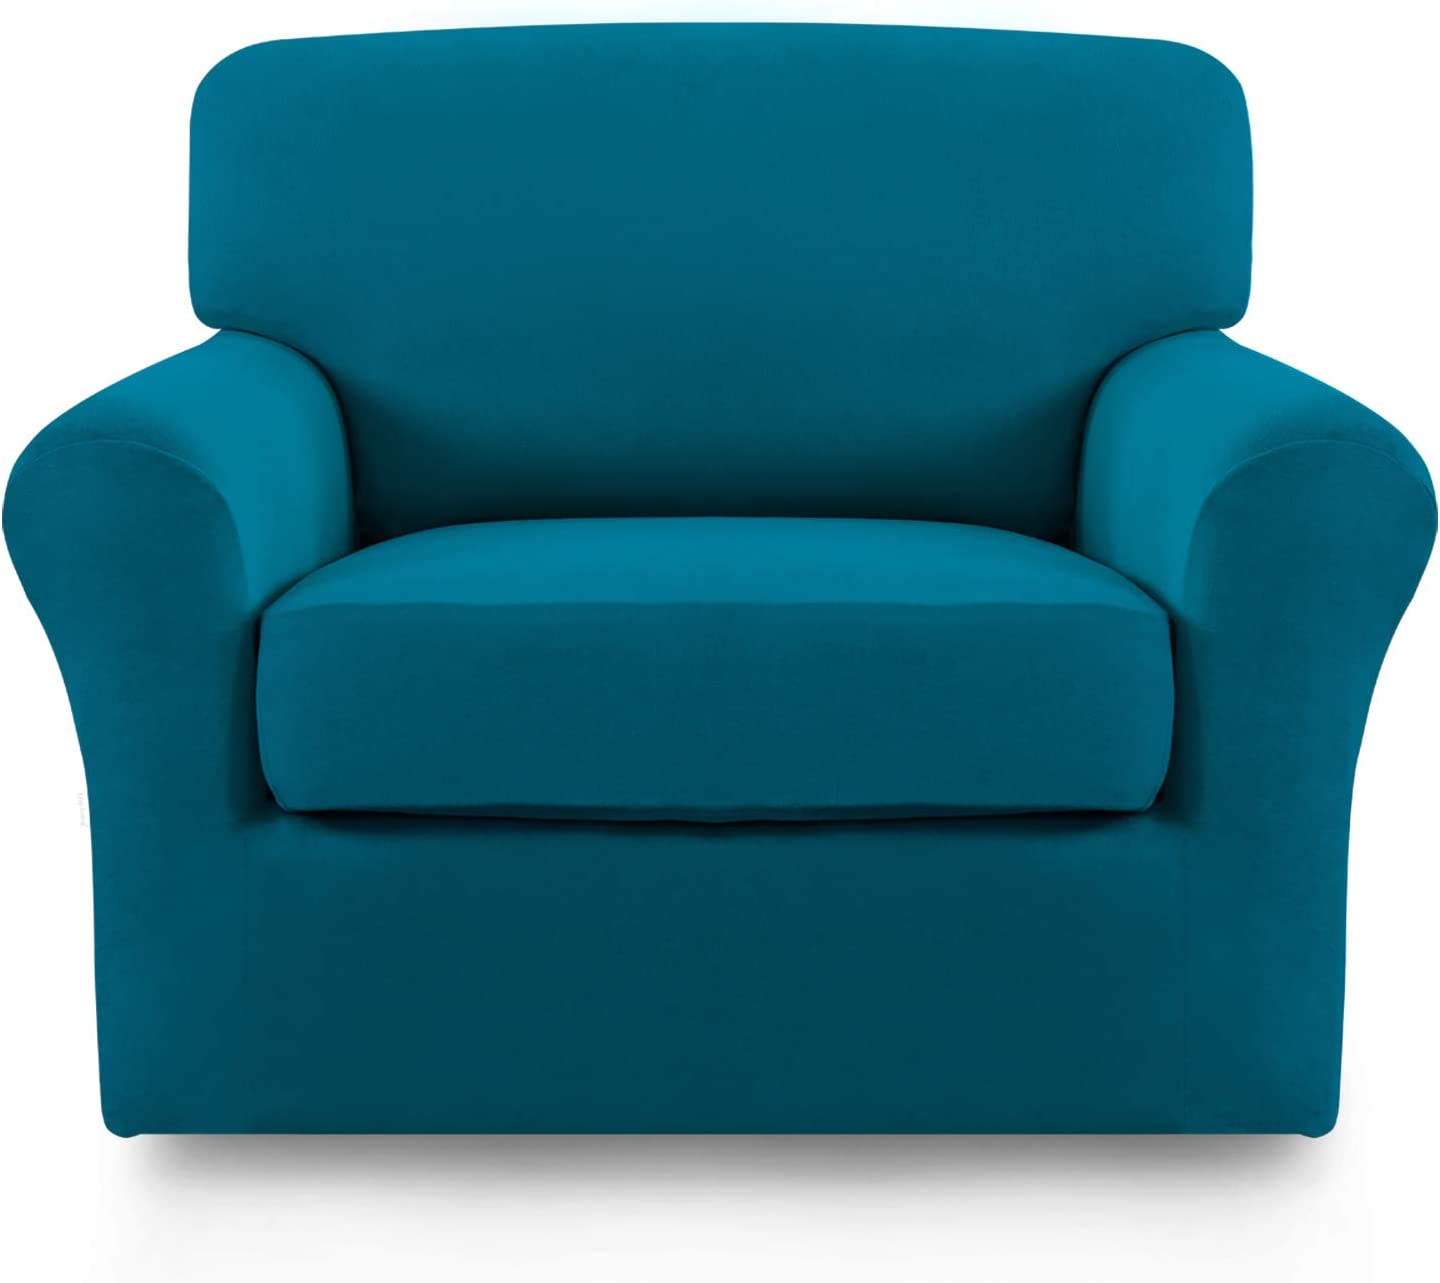 Easy-Going 2 Pieces Microfiber Stretch Couch Slipcover – Spandex Non-Slip Soft Fitted Sofa Couch Cover, Washable Furniture Protector with Anti-Skid Elastic Bottom for Kids (Chair, Peacock Blue)